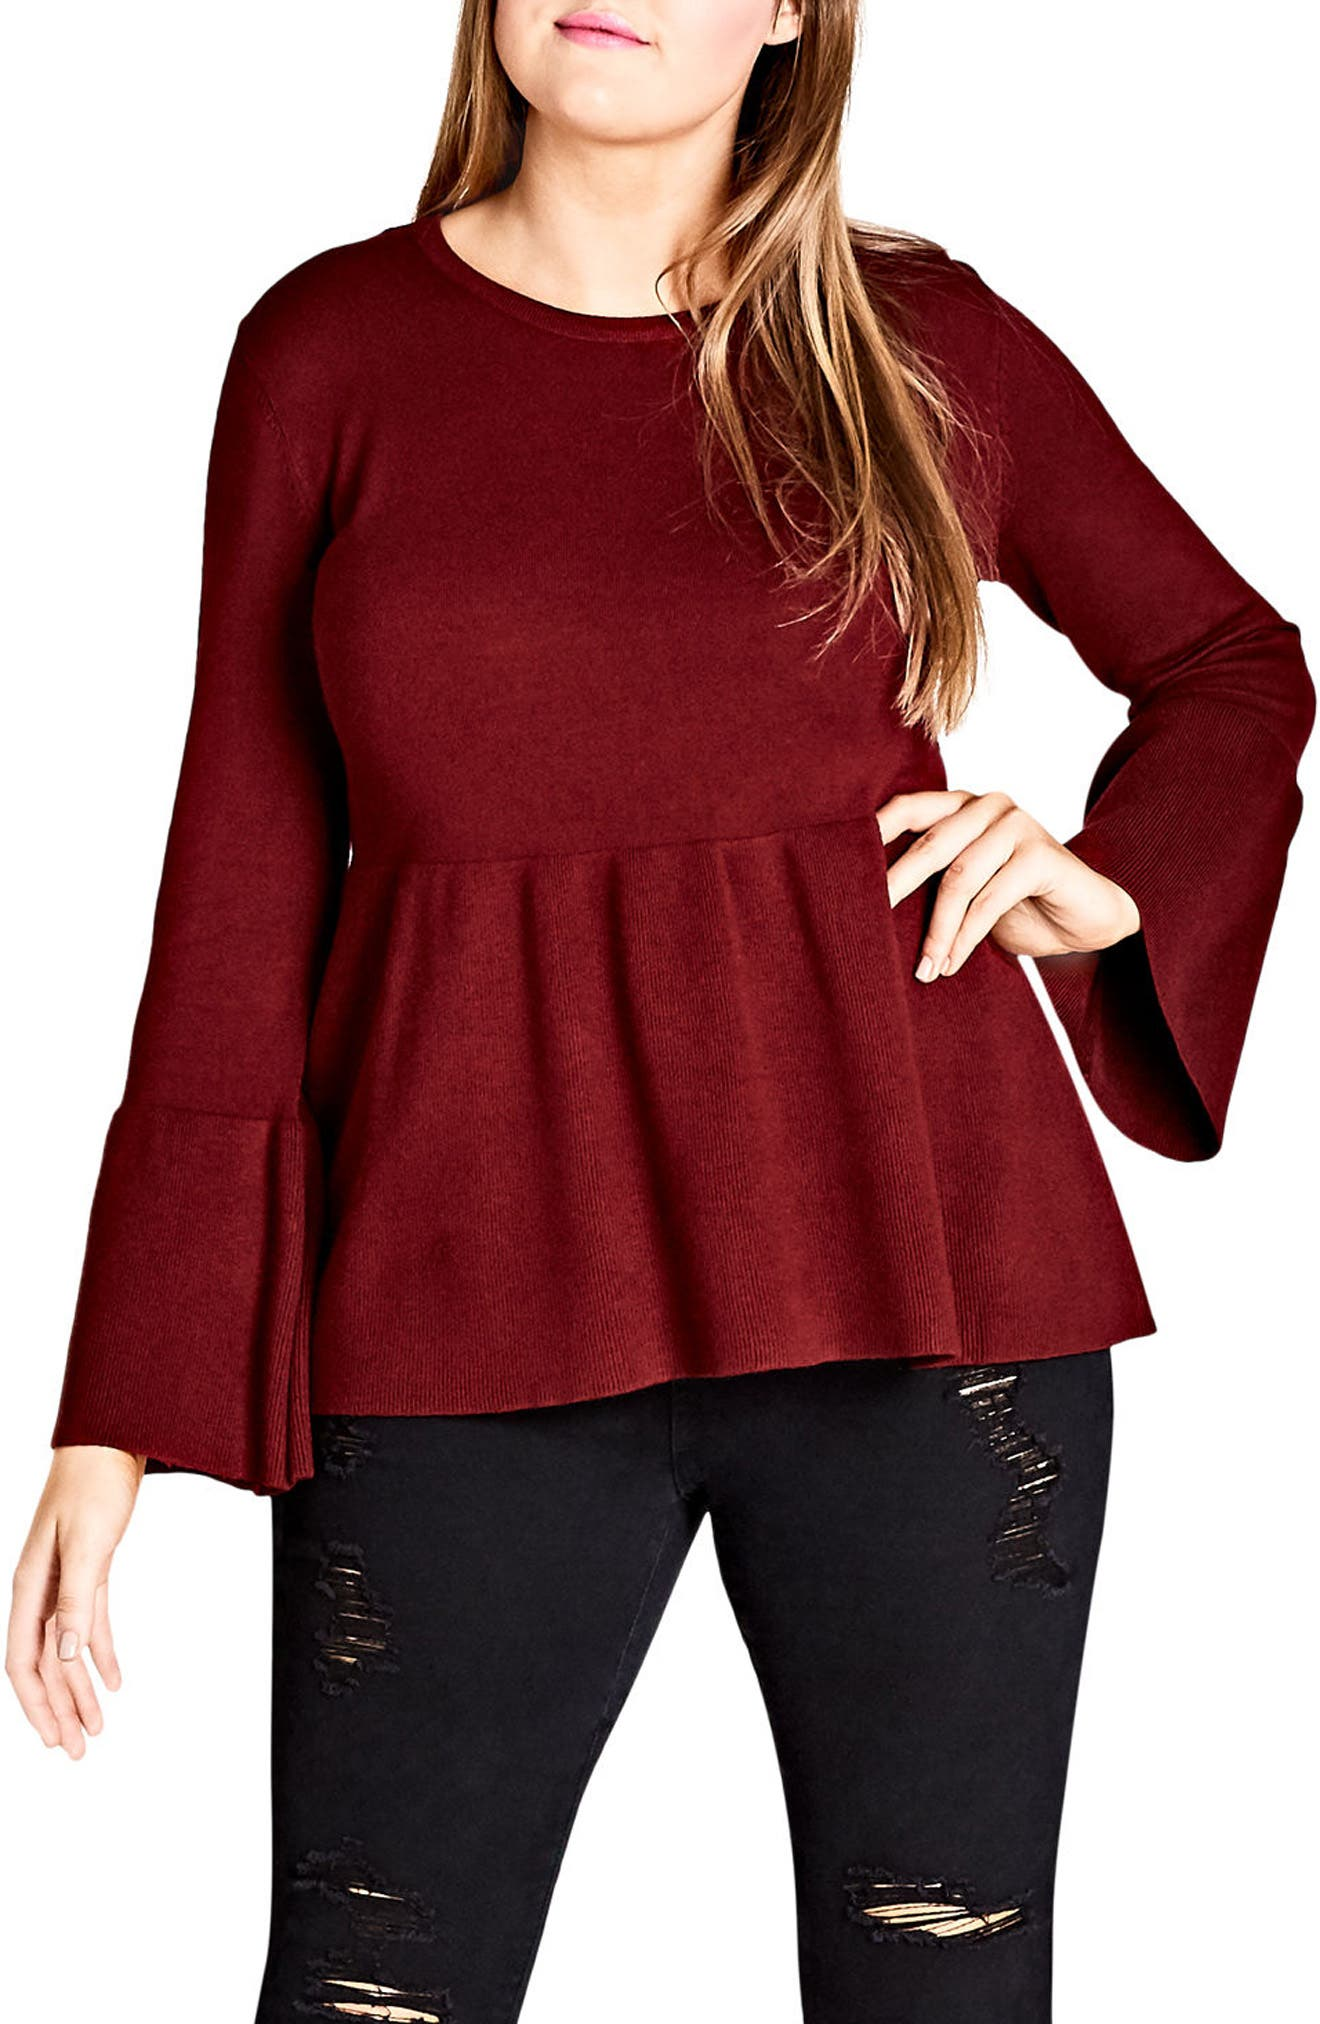 Alternate Image 1 Selected - City Chic Bell Sleeve Peplum Sweater (Plus Size)